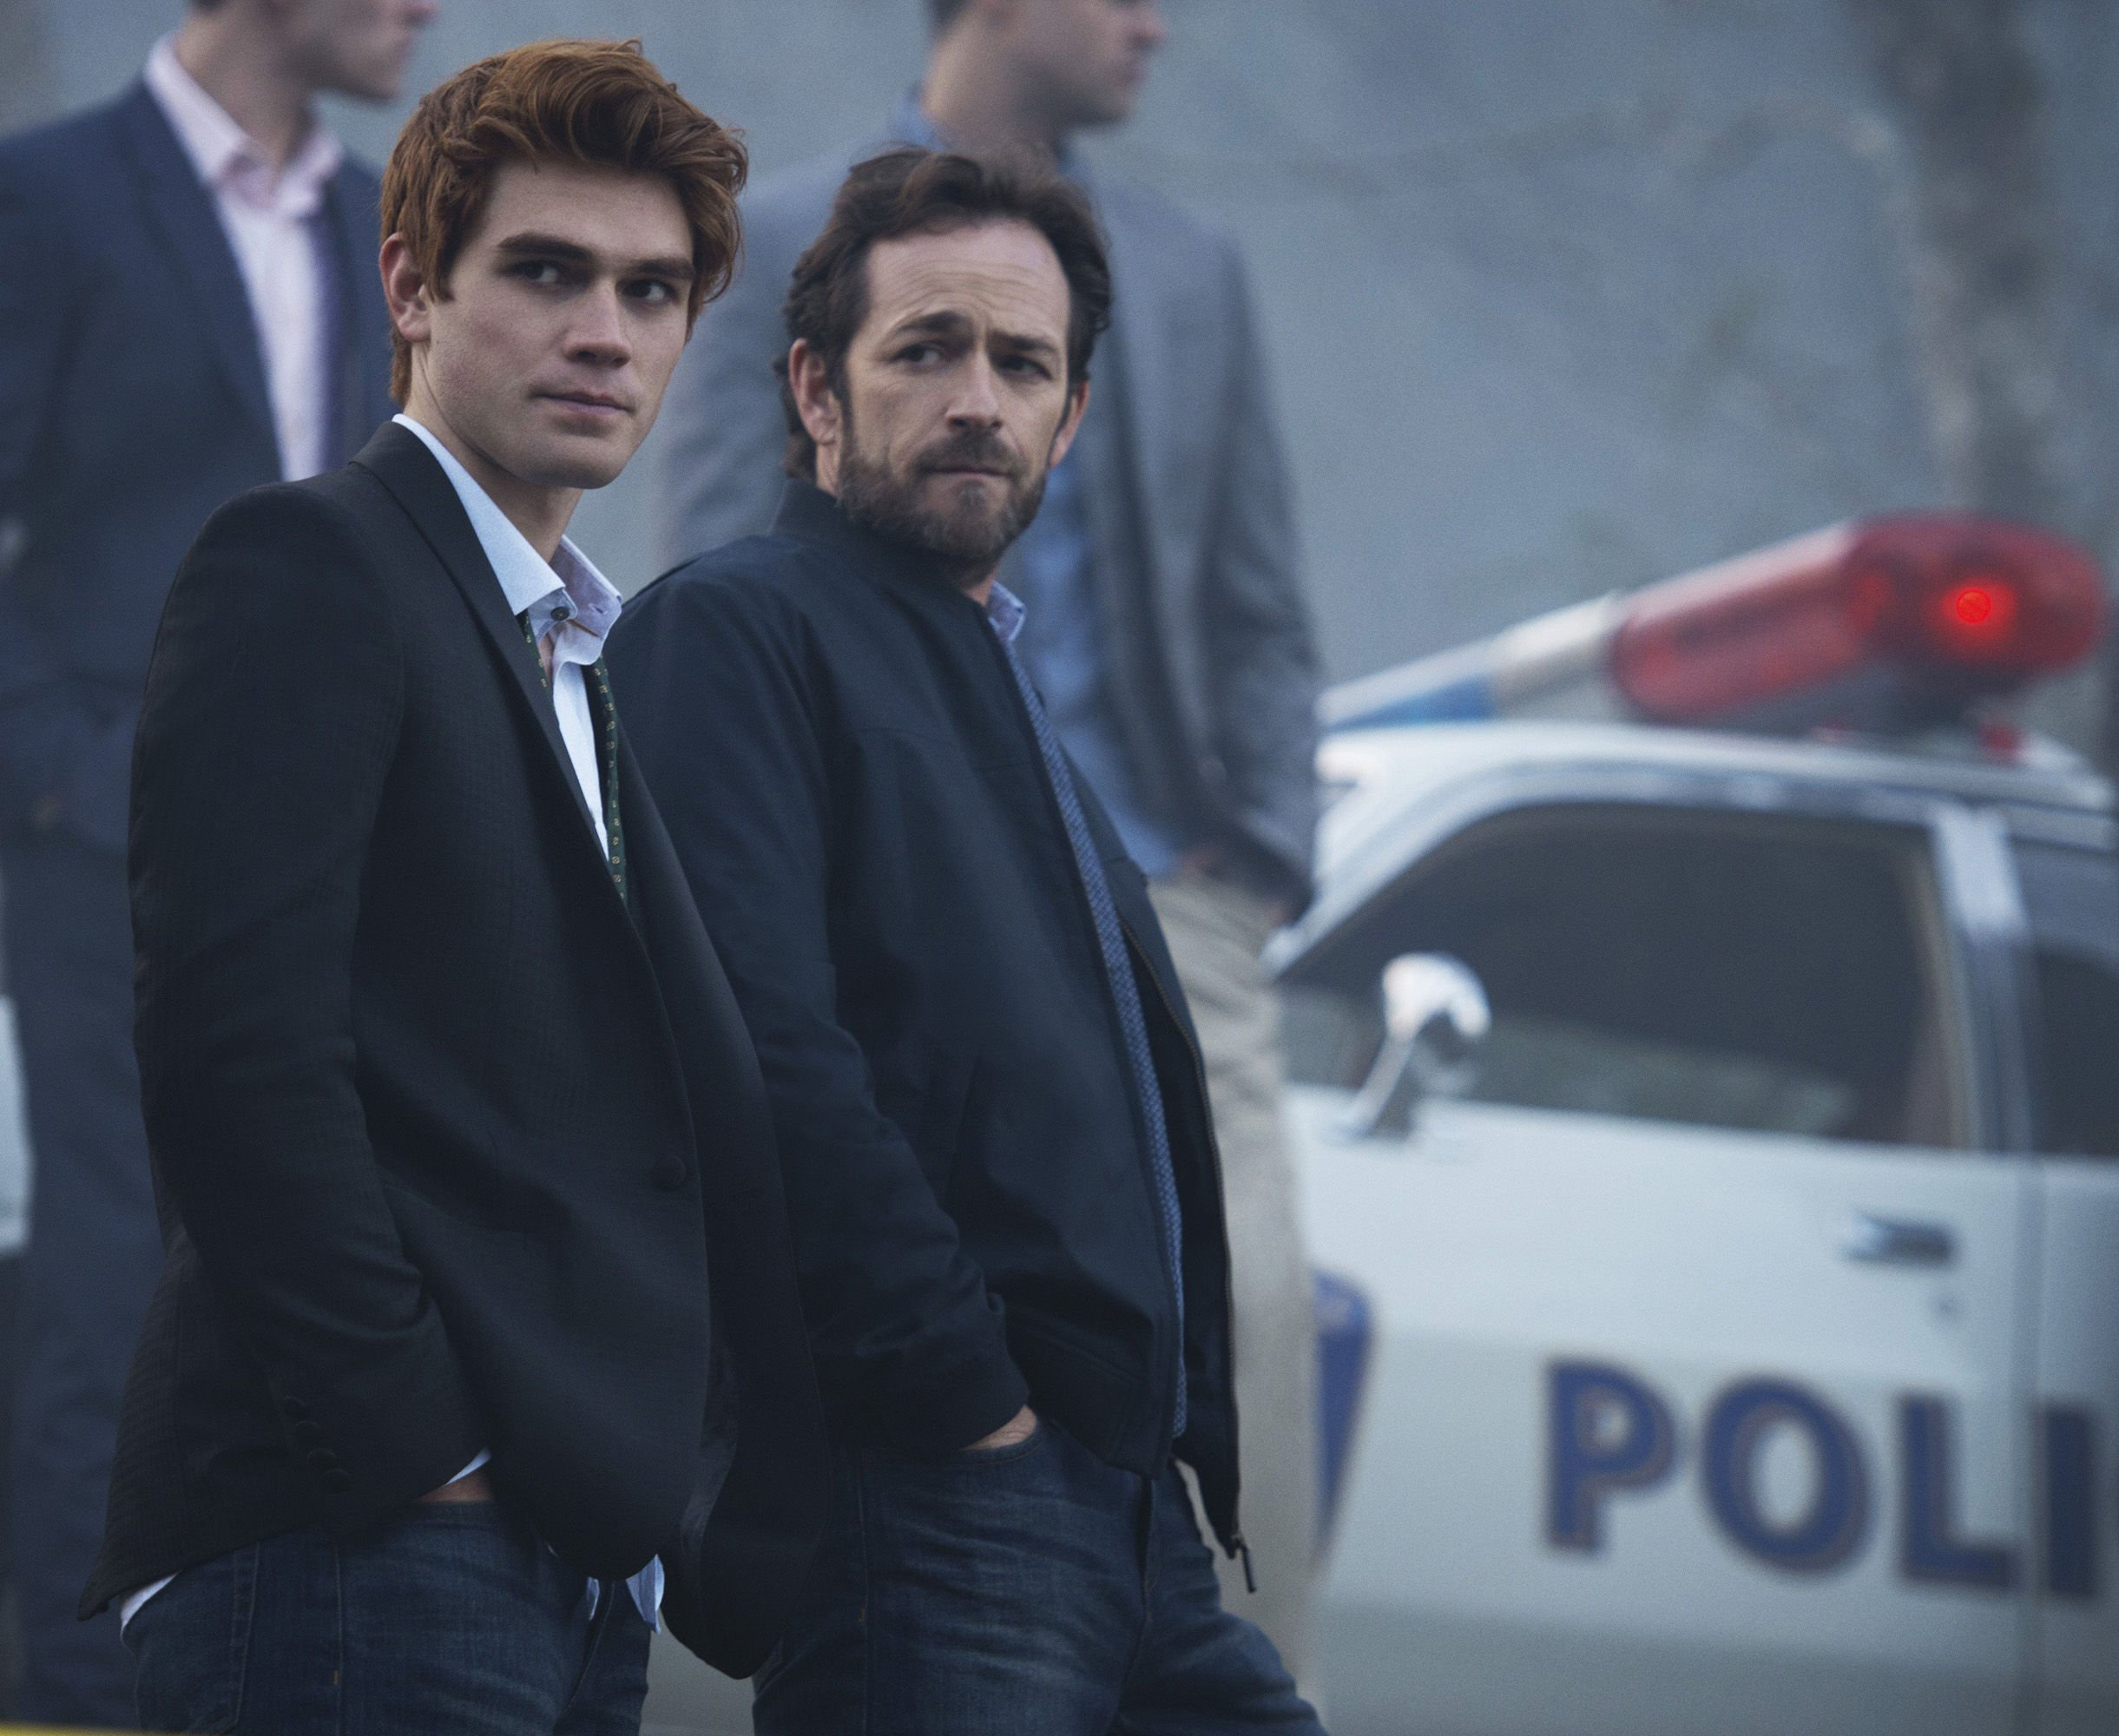 Riverdale's KJ Apa posts heartfelt tribute to onscreen dad Luke Perry after his death: 'Rest in love bro'